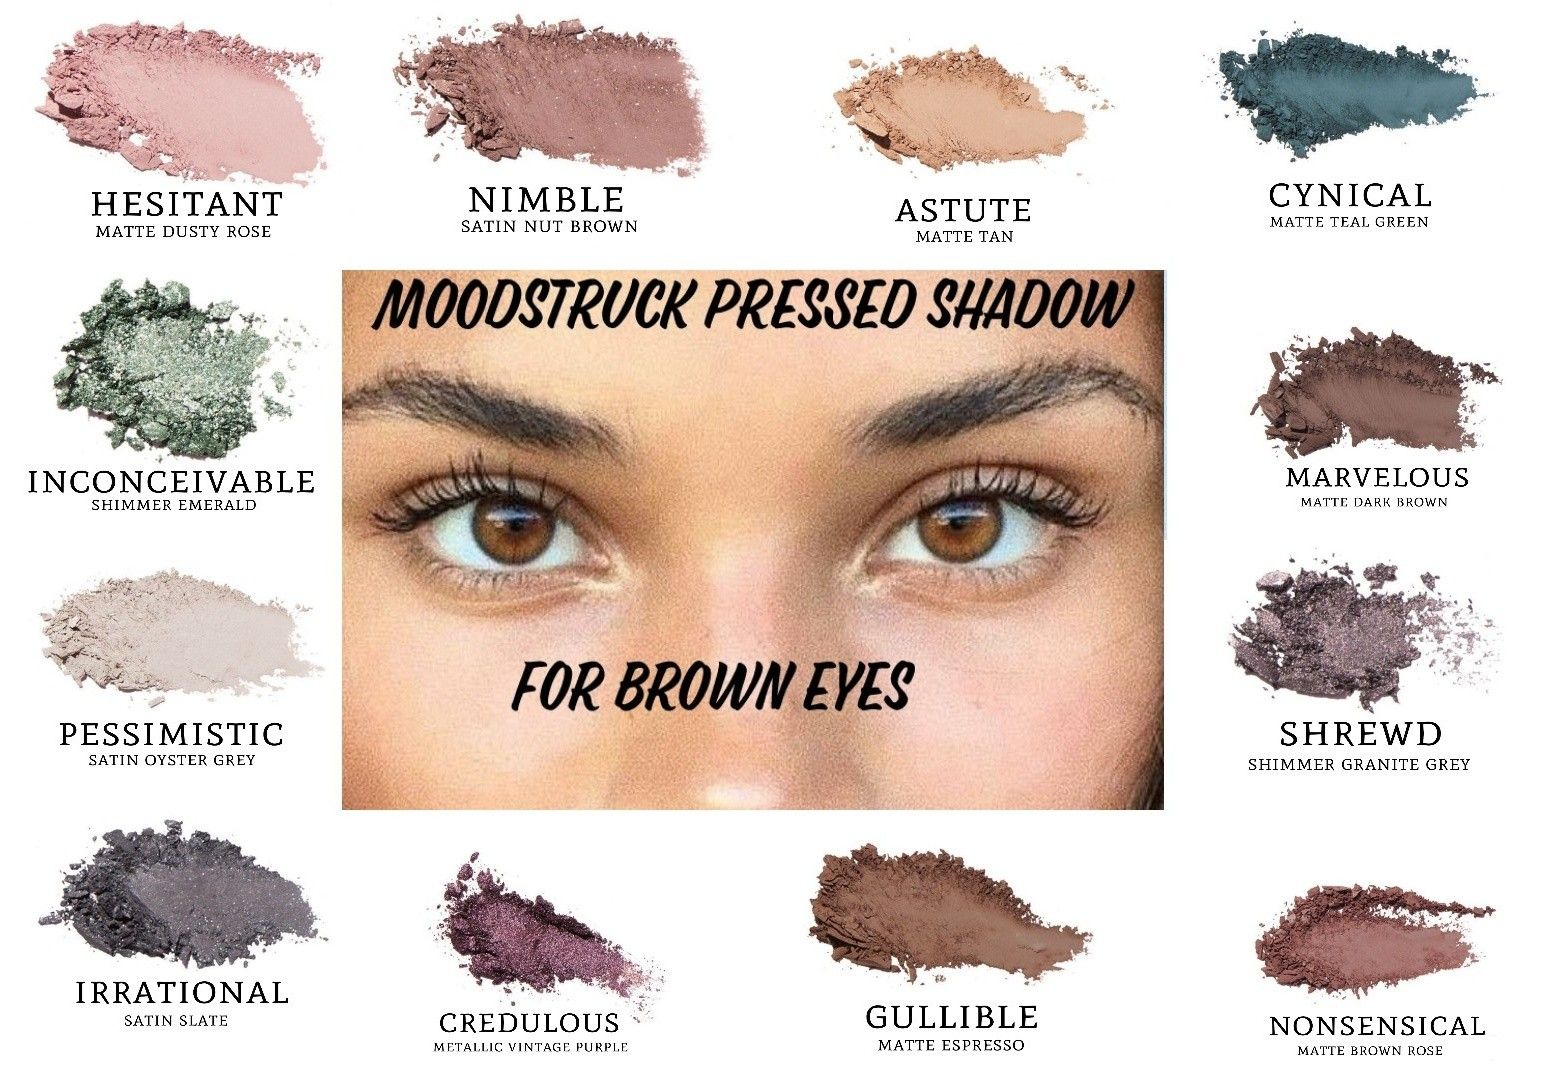 Do You Have Brown Eyes These Are Some Of The Moodstruck Pressed Shadows Colors That Will Make Your Eyes Pop Younique Eyeshadow Brown Eyes Pop Brown Eyeshadow